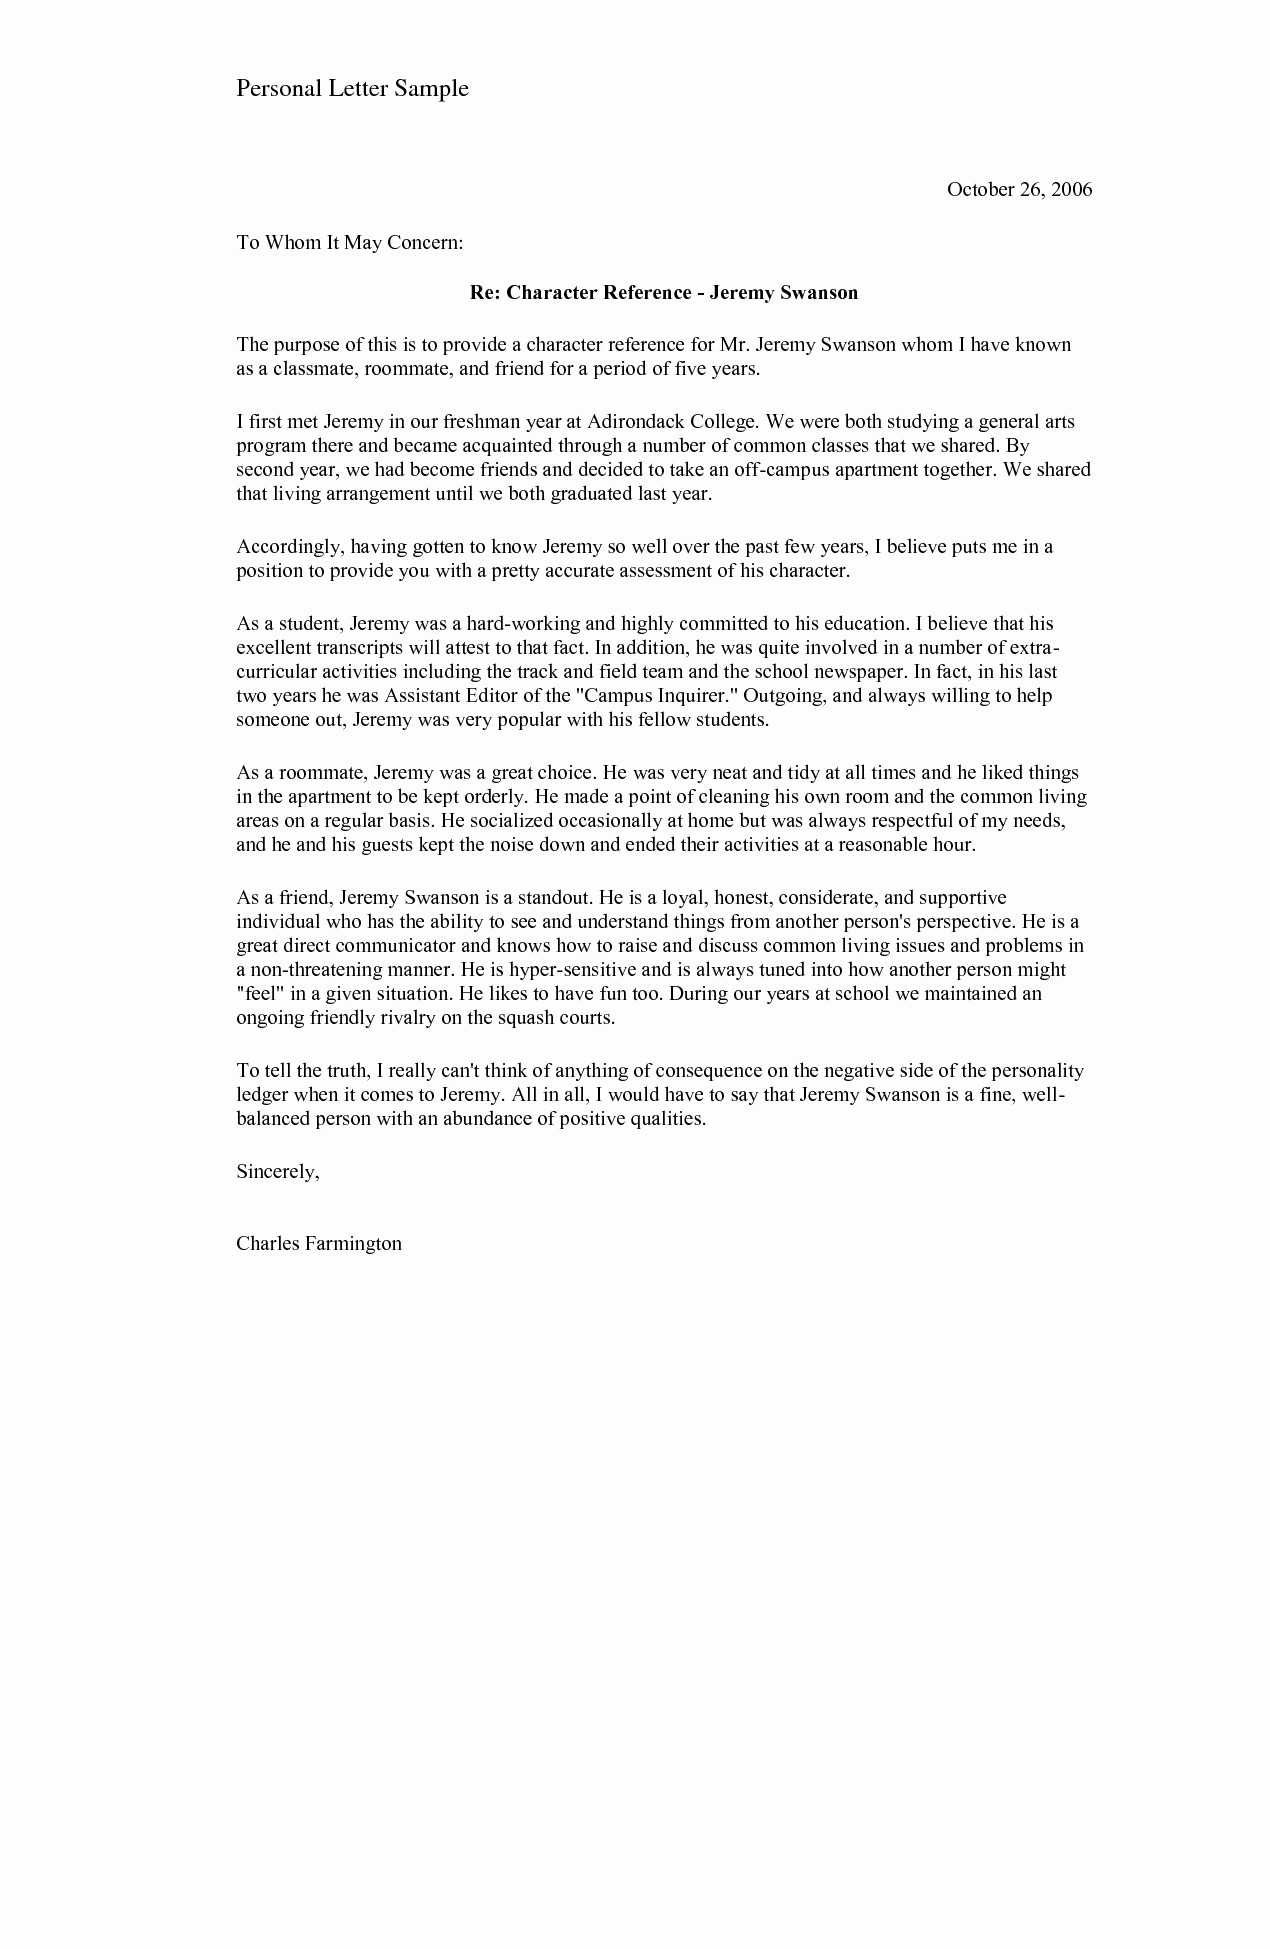 Personal Reference Letter Template Free Lovely Re Mendation Letter for A Friend Template